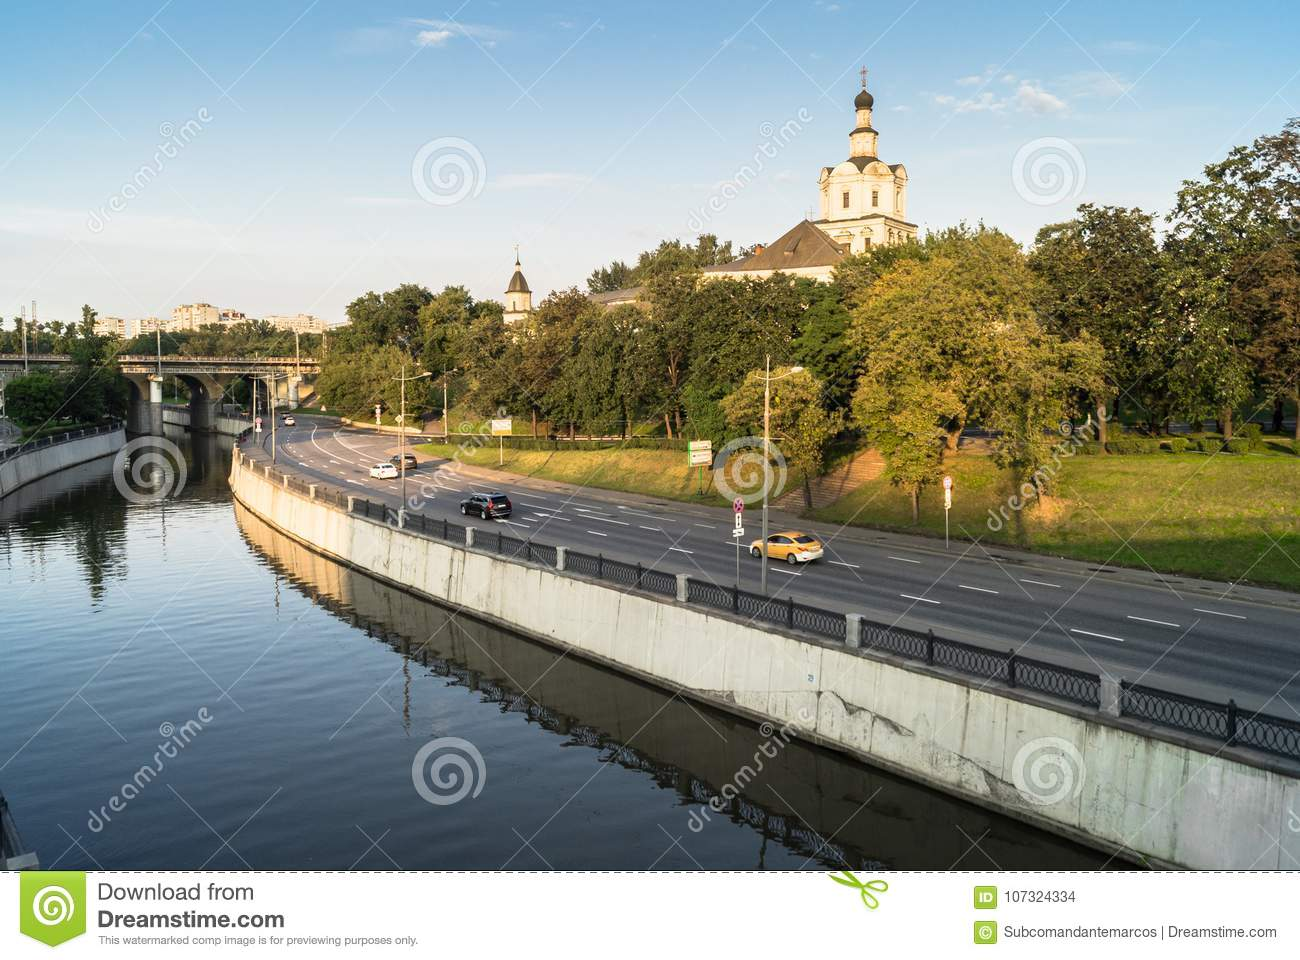 View of the Andronikov Monastery and roadway of the river Yauza quay on the clear summer evening, Moscow, Russia.